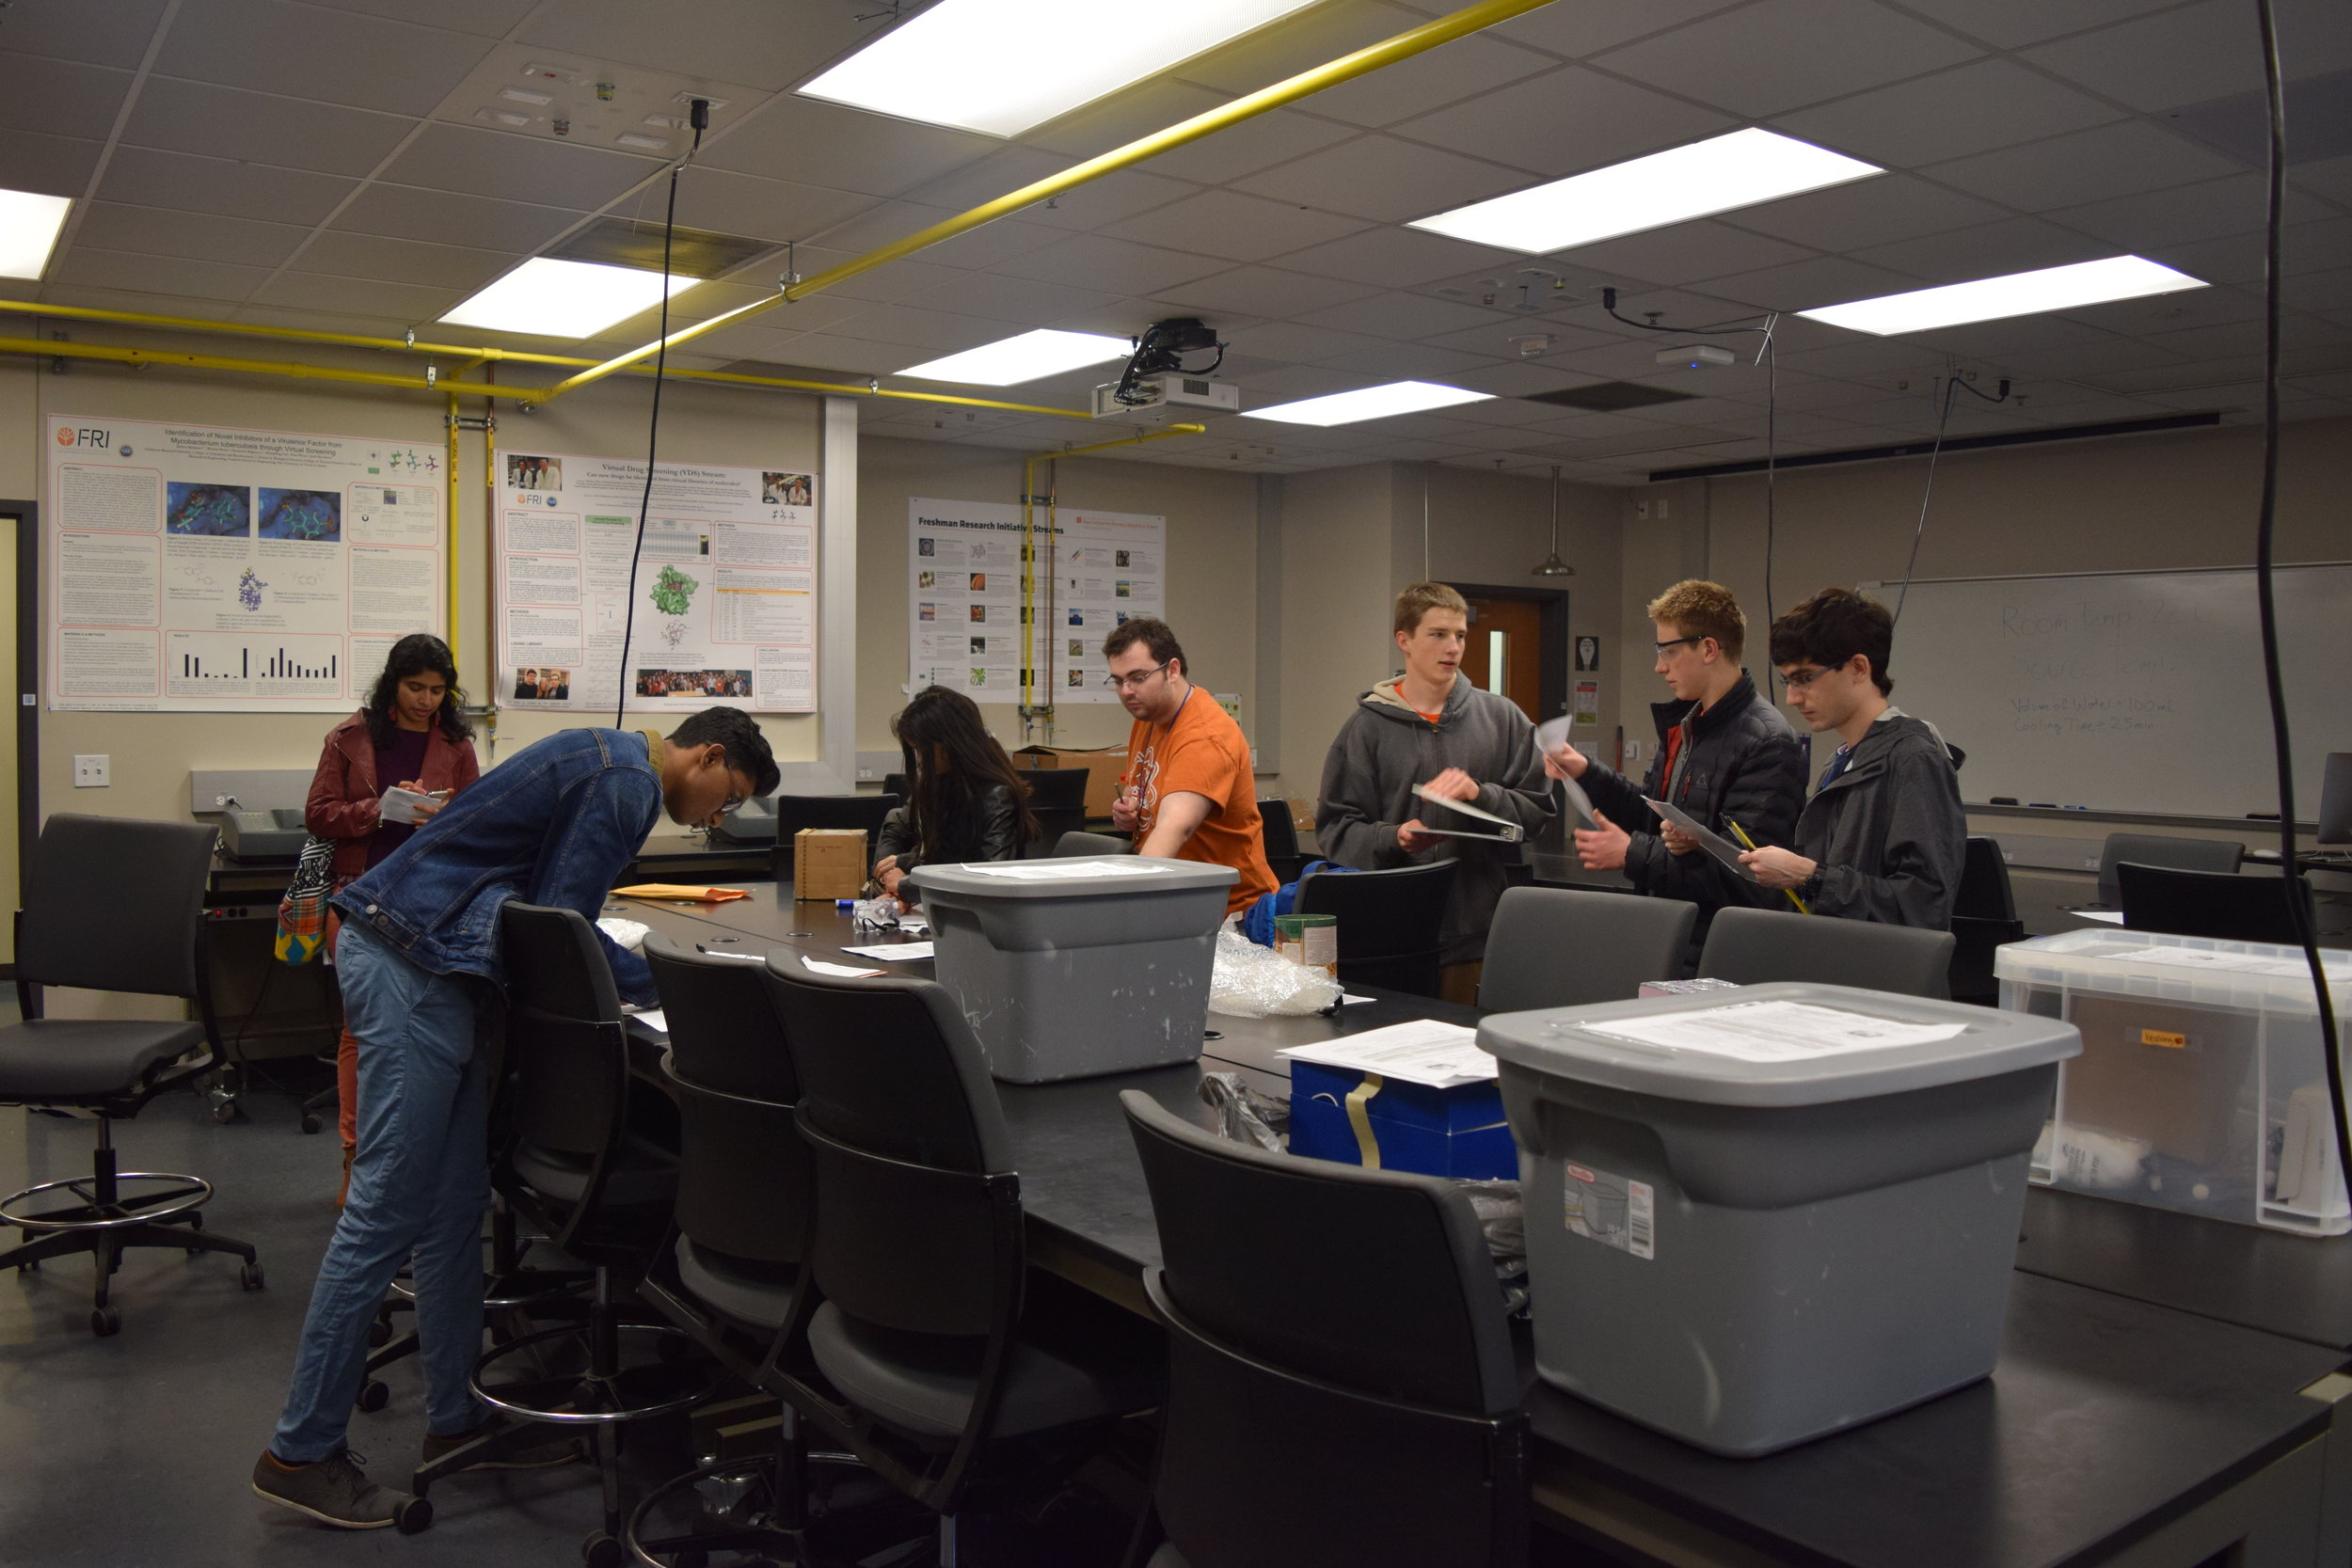 Tournament - ATX Scioly is excited to announce our fifth annual tournament on Saturday, October 26, 2019! As always, you can expect a top-notch competition, complete with spectacular events run by incredibly accomplished event supervisors and some of the best teams in the country.Check out the Tournaments page to learn more!